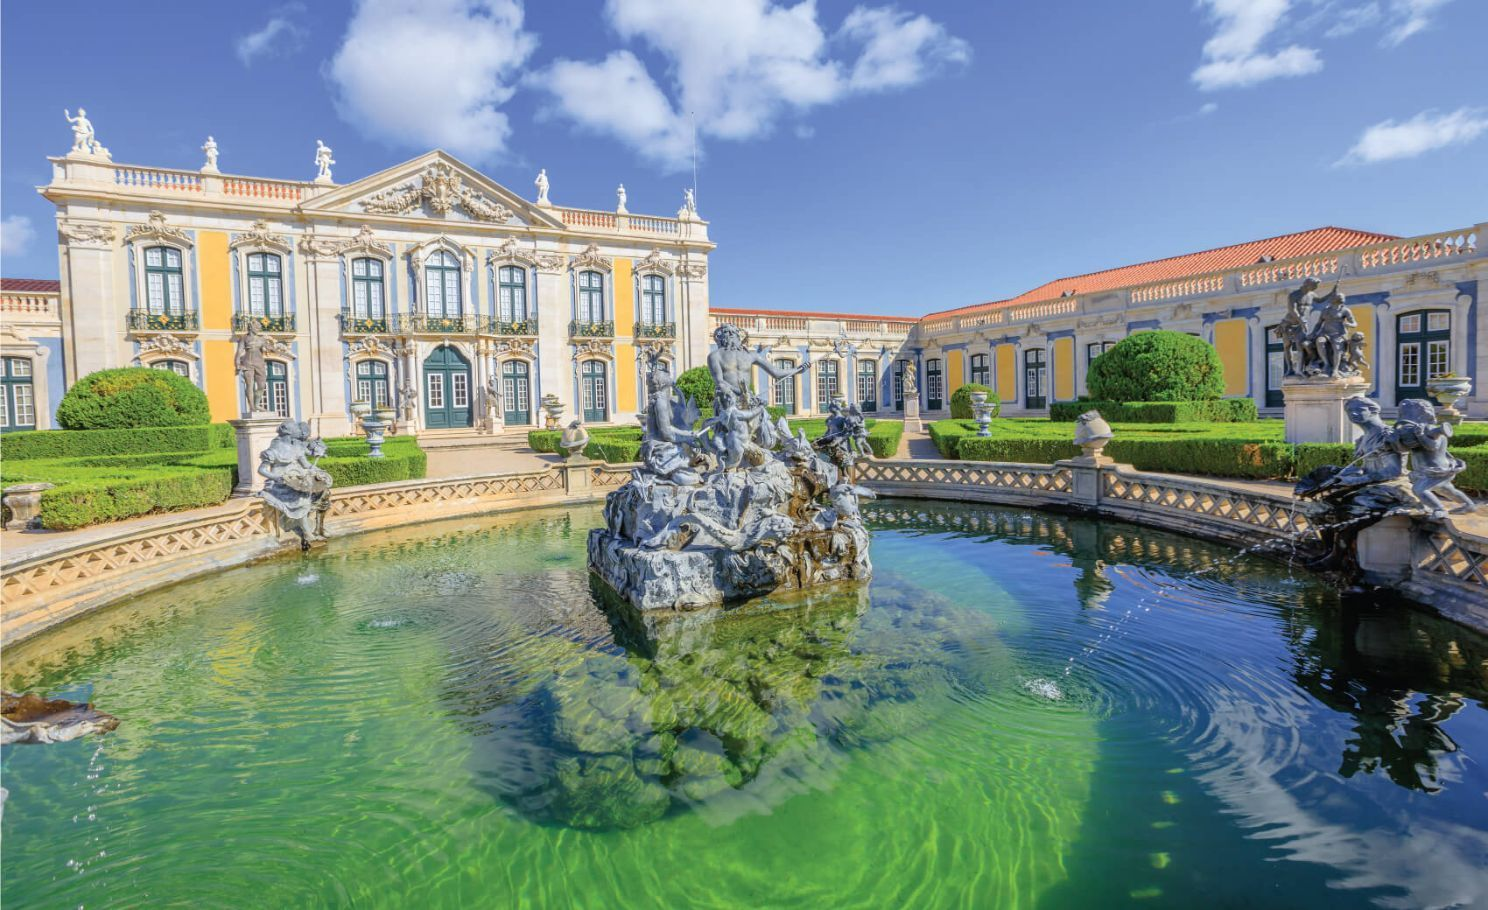 Baroque facade of Queluz National Palace and Neptune Fountain in Sintra, Lisbon district. Defined as